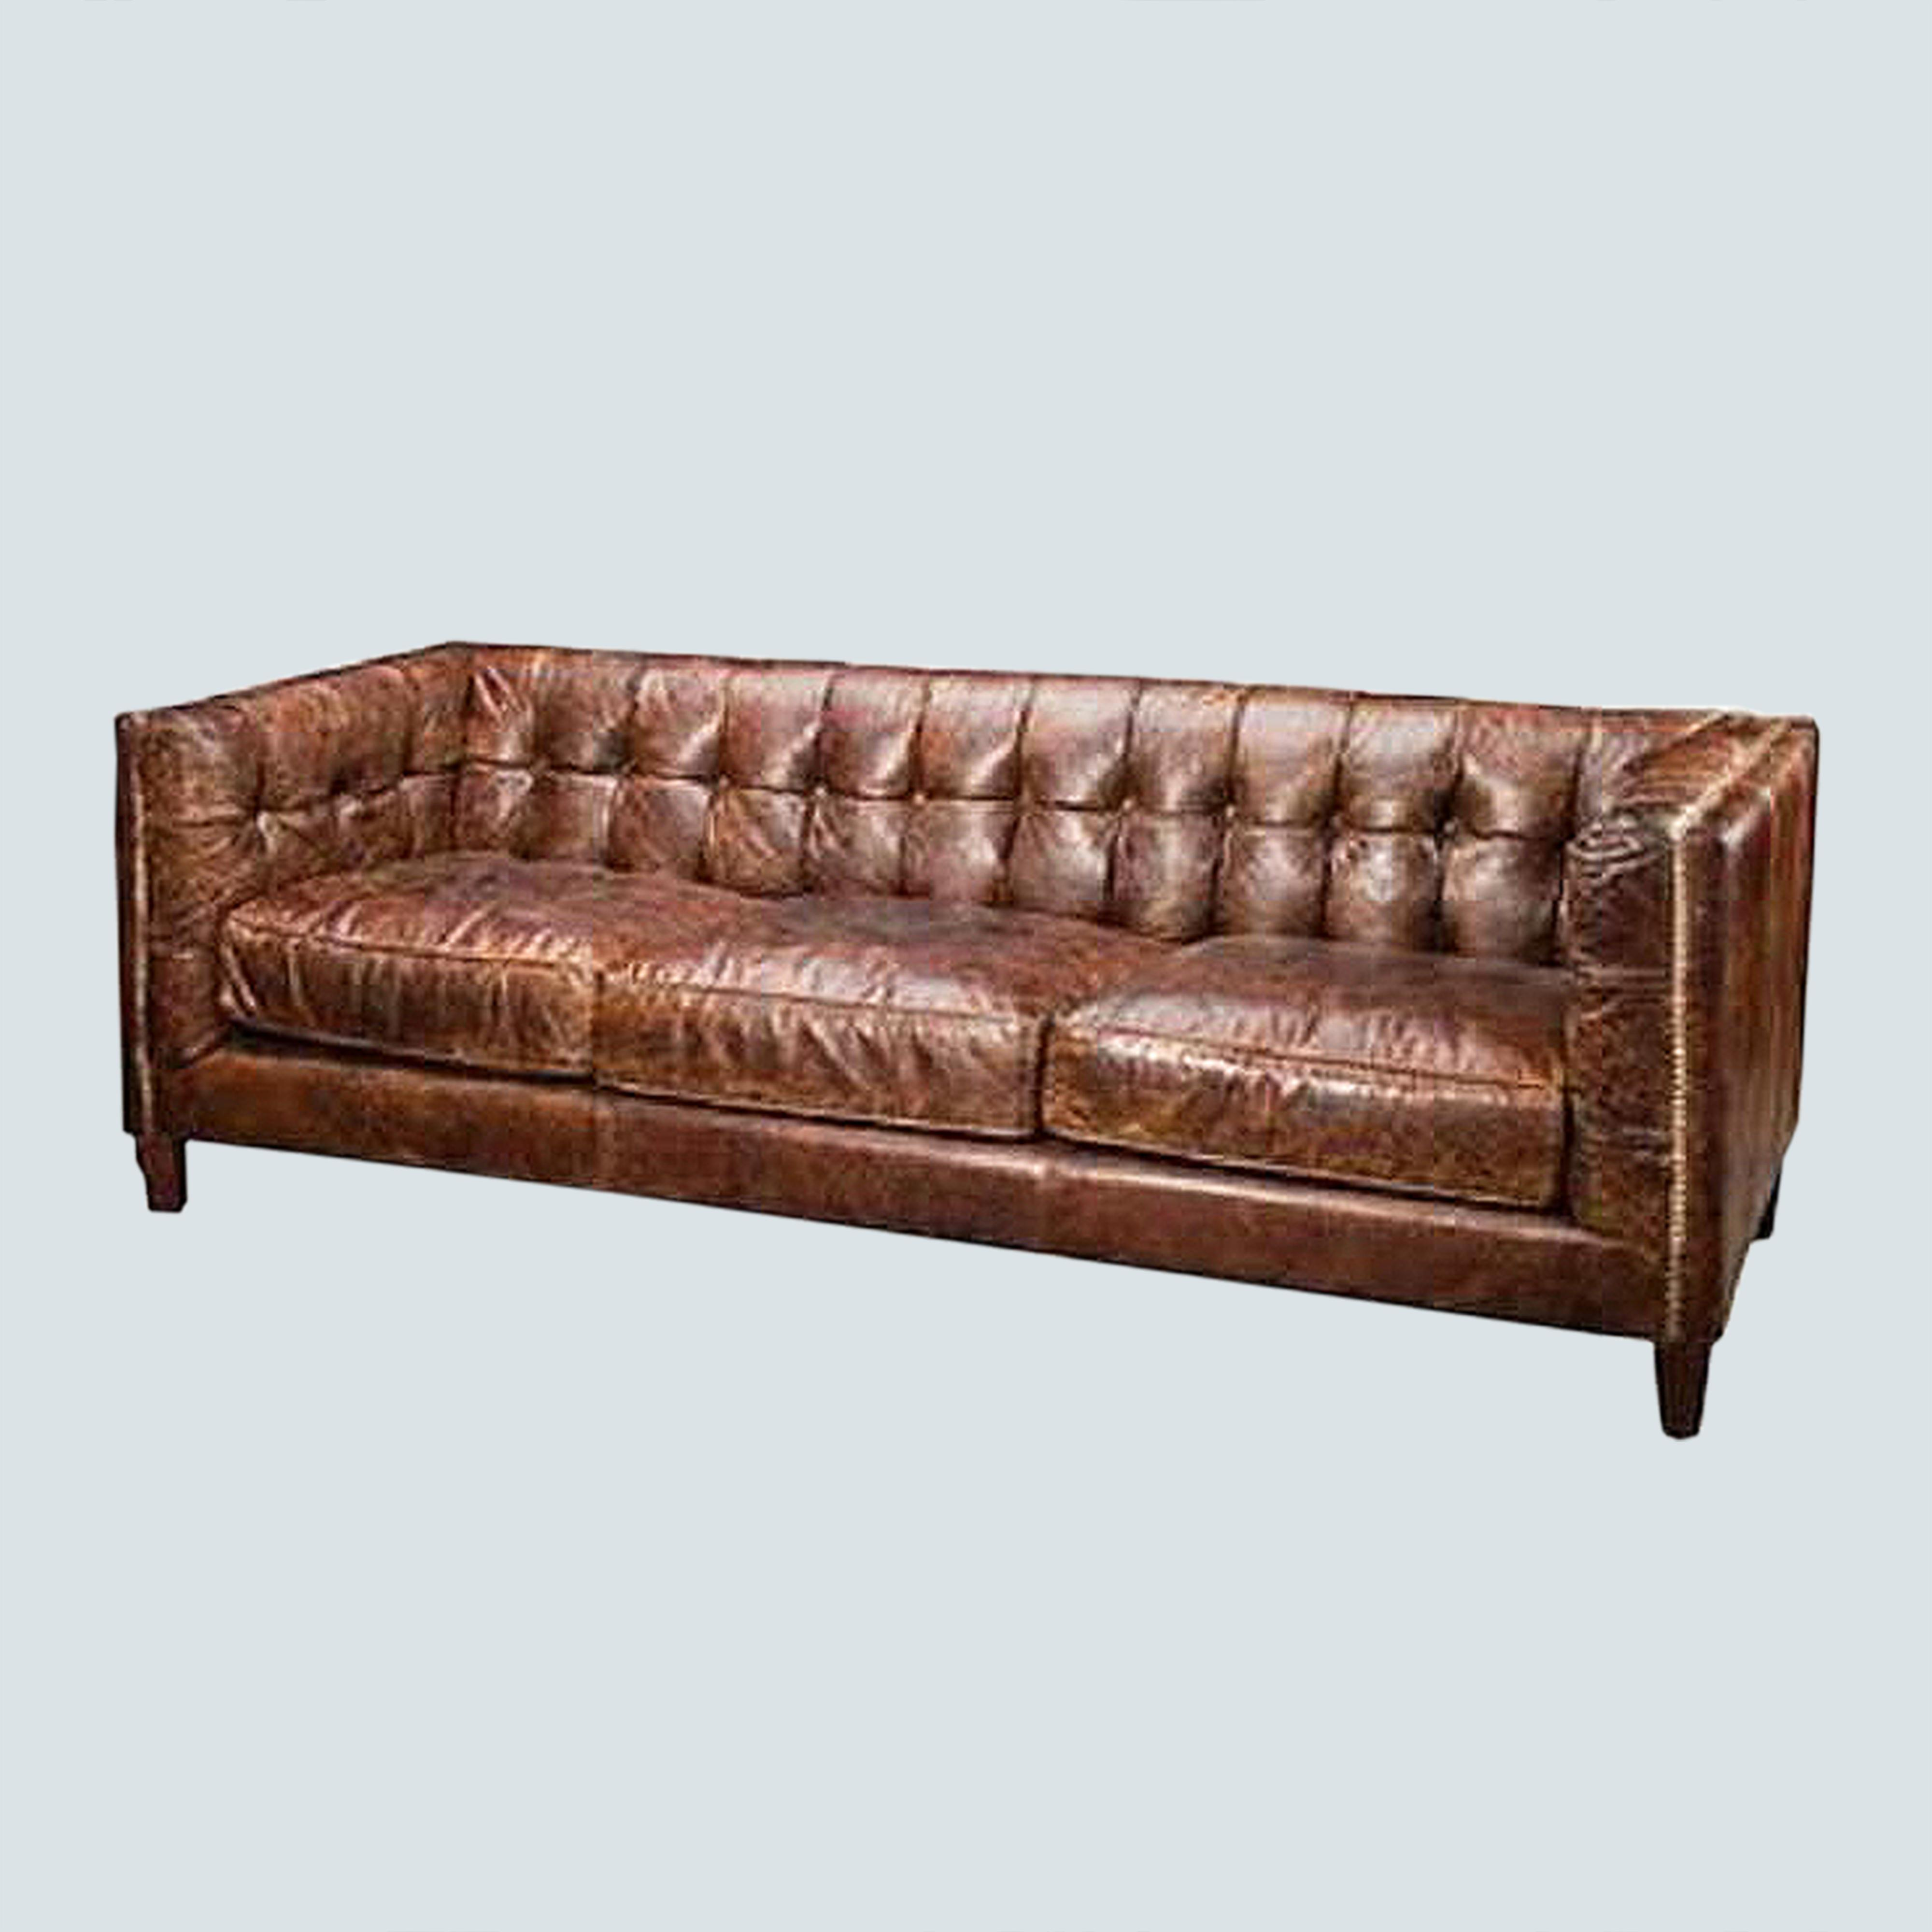 Leather Accent Couch Sofa , upholstered club lounge sofa, Vintage Chesterfield 3 seat